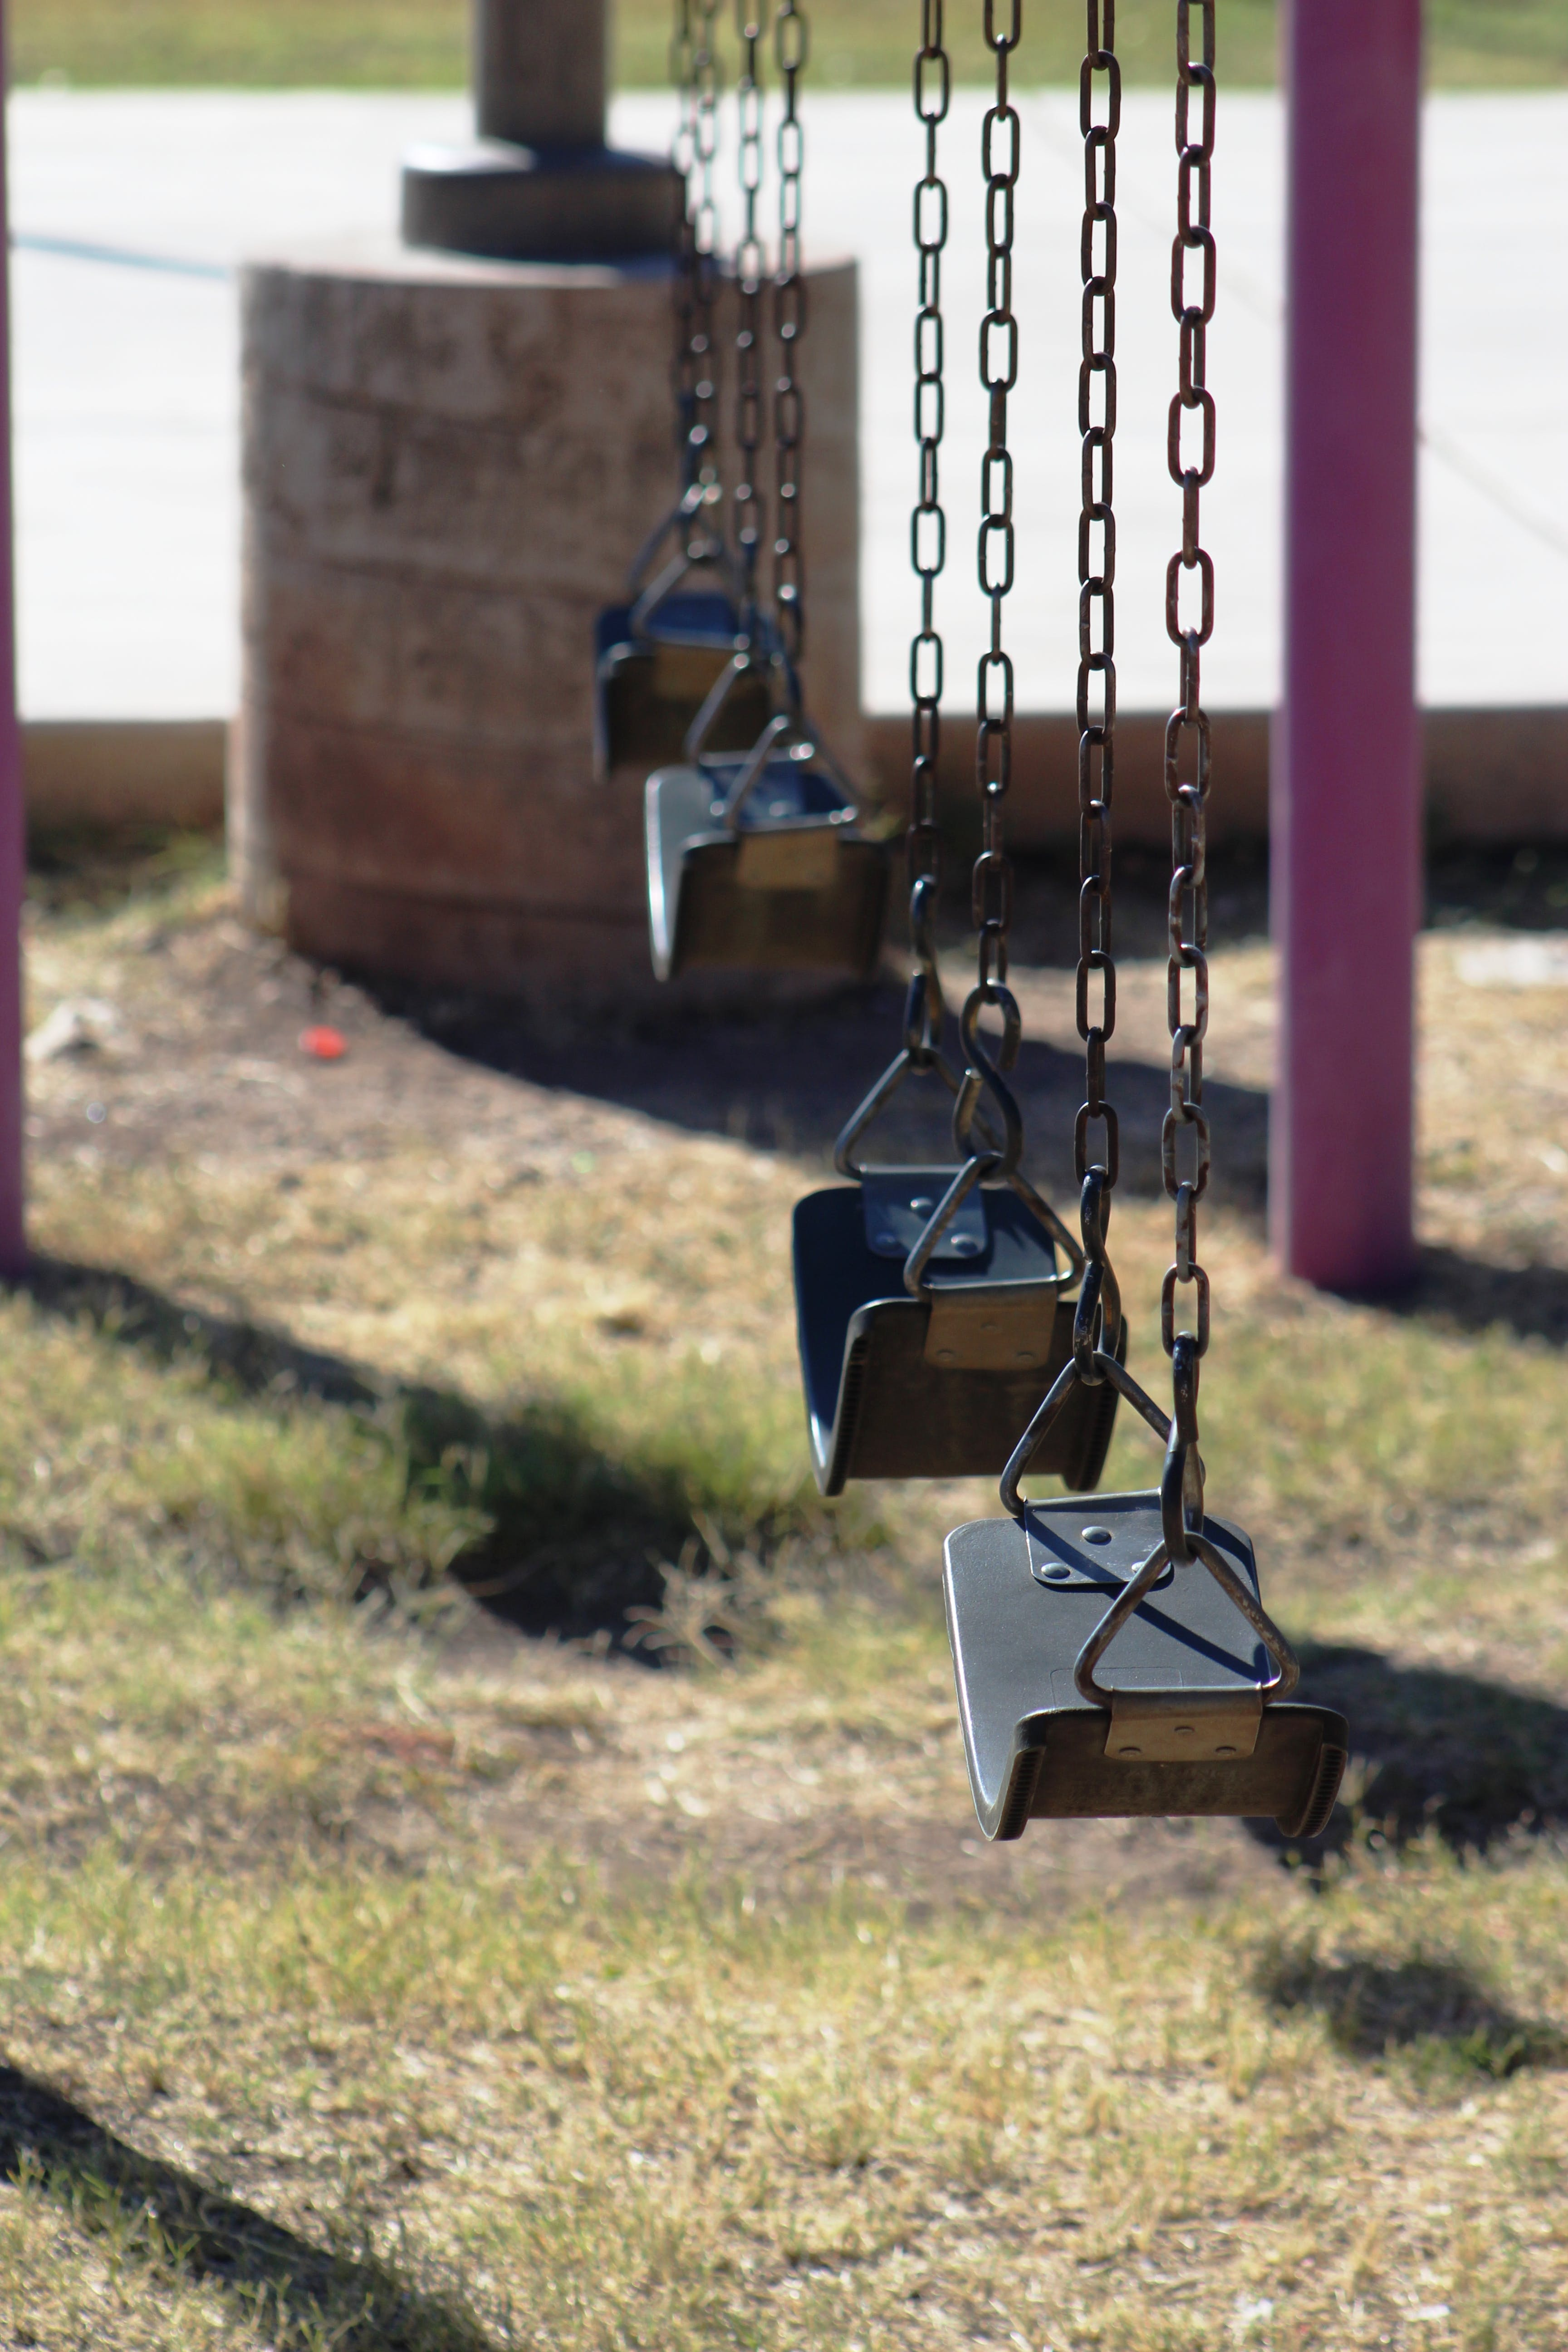 Free stock photo of swings